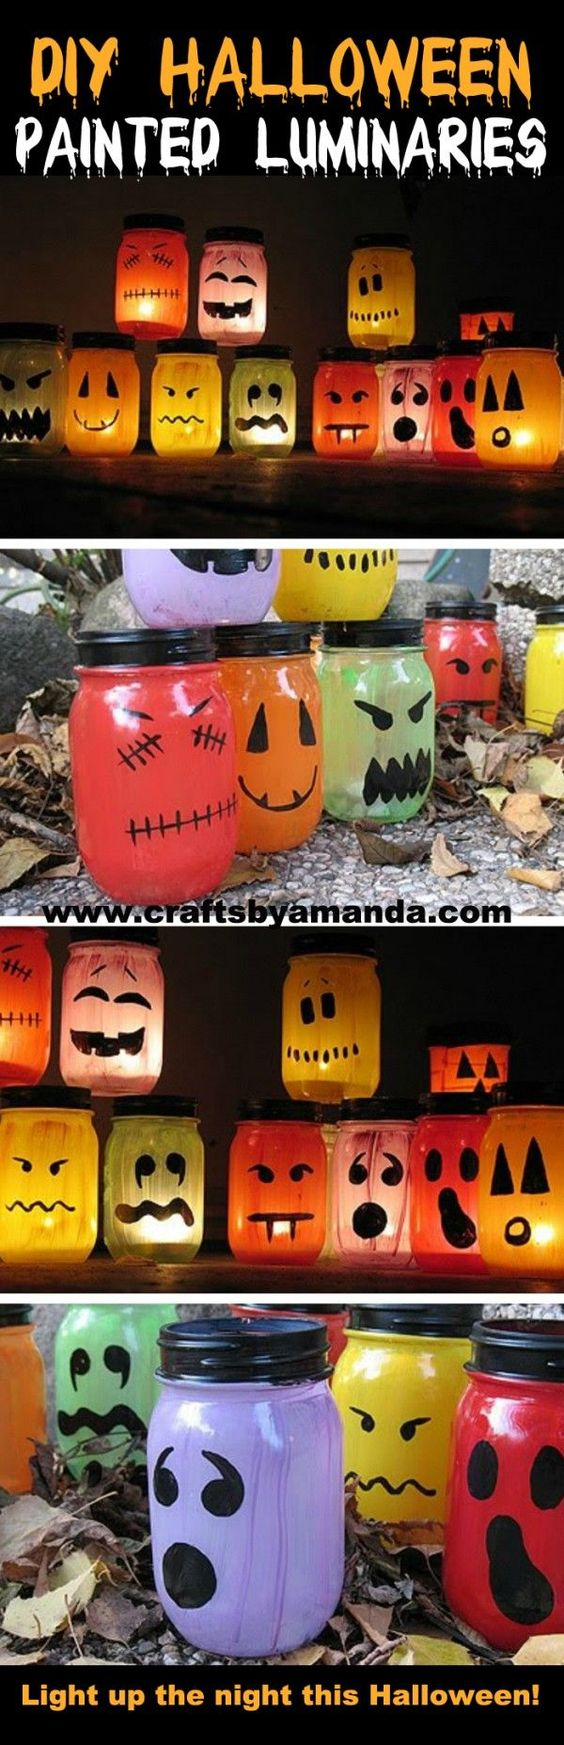 10. DIY Halloween Painted Luminaries